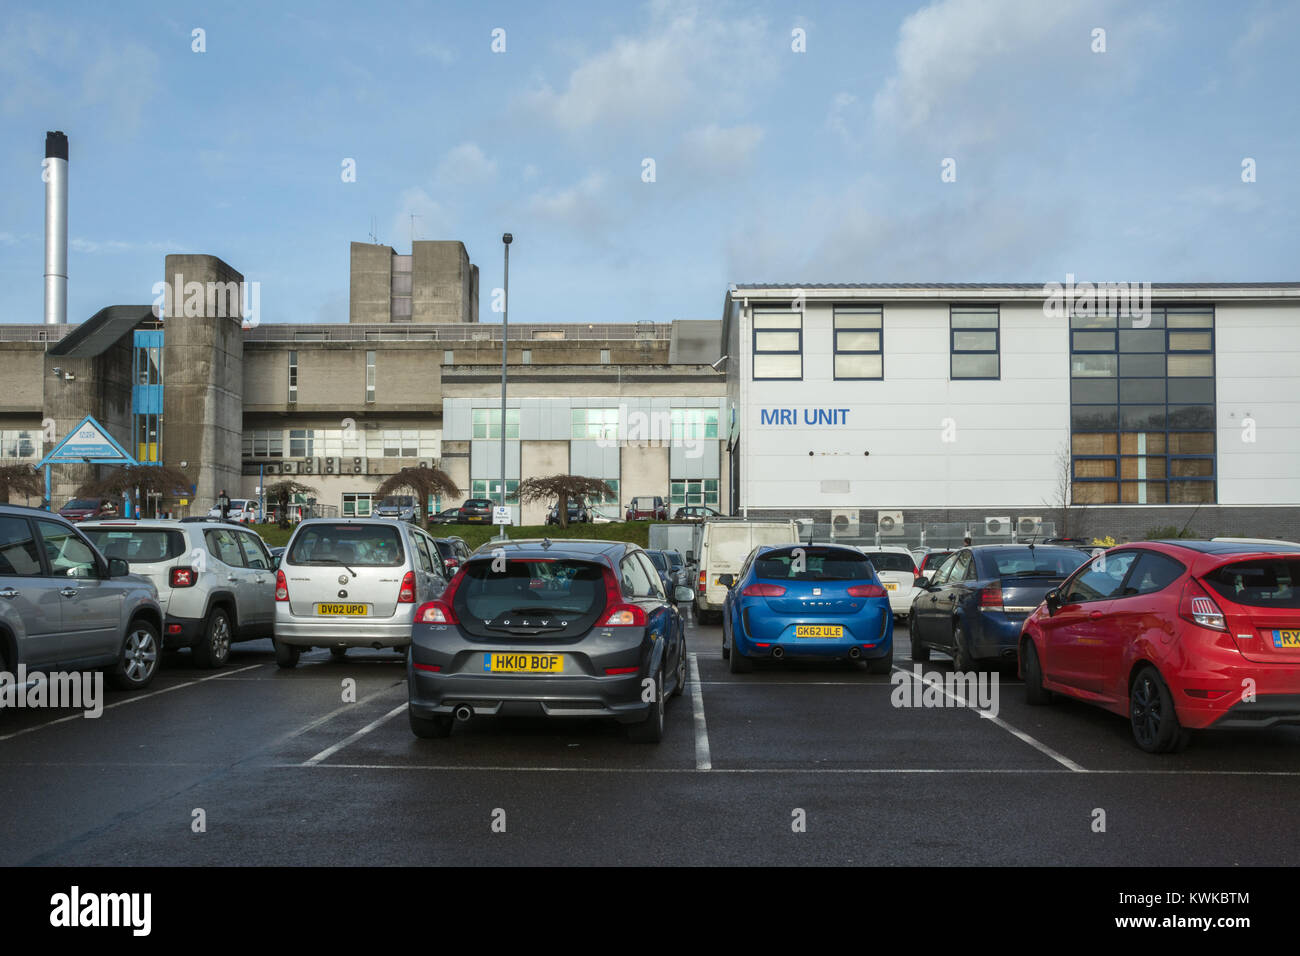 Basingstoke and North Hampshire Hospital, a National Health Hospital, from the car park - Stock Image